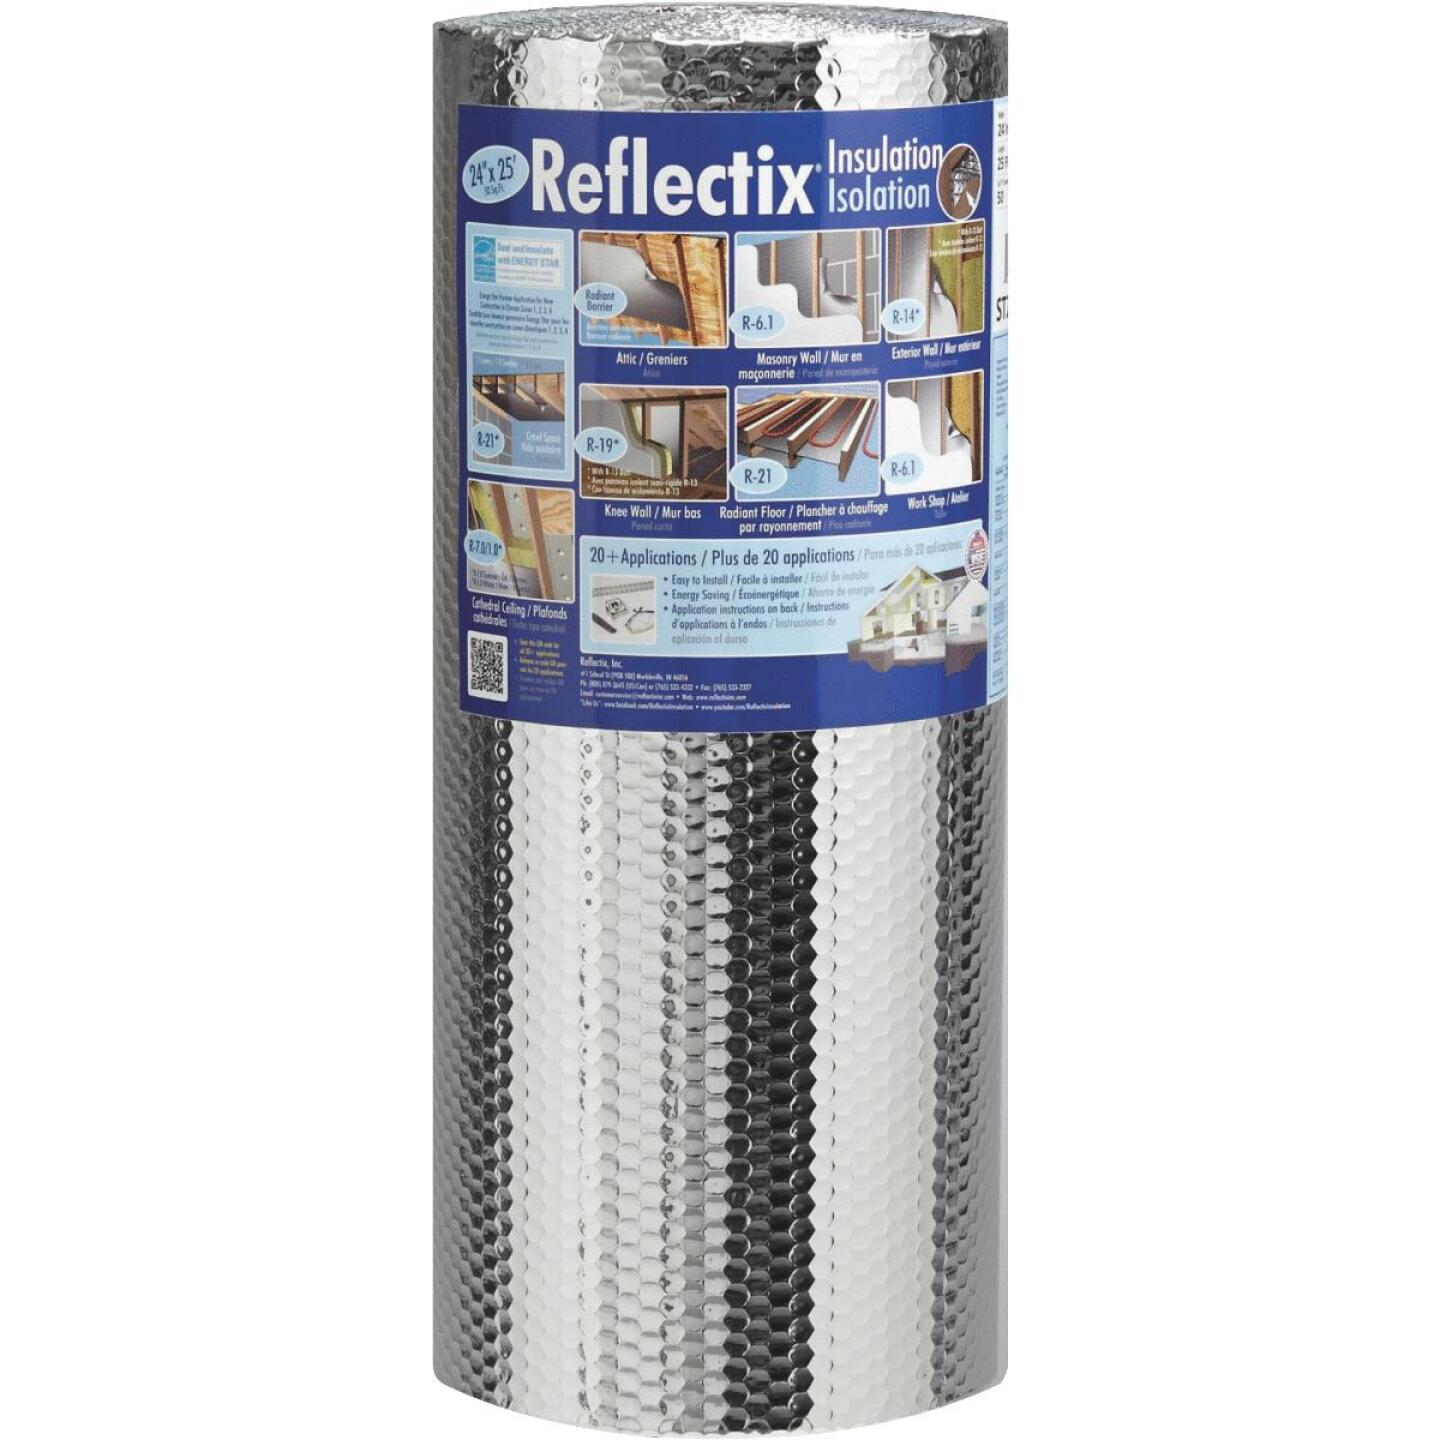 Reflectix 24 In. x 25 Ft. Staple Tab Reflective Insulation Image 1